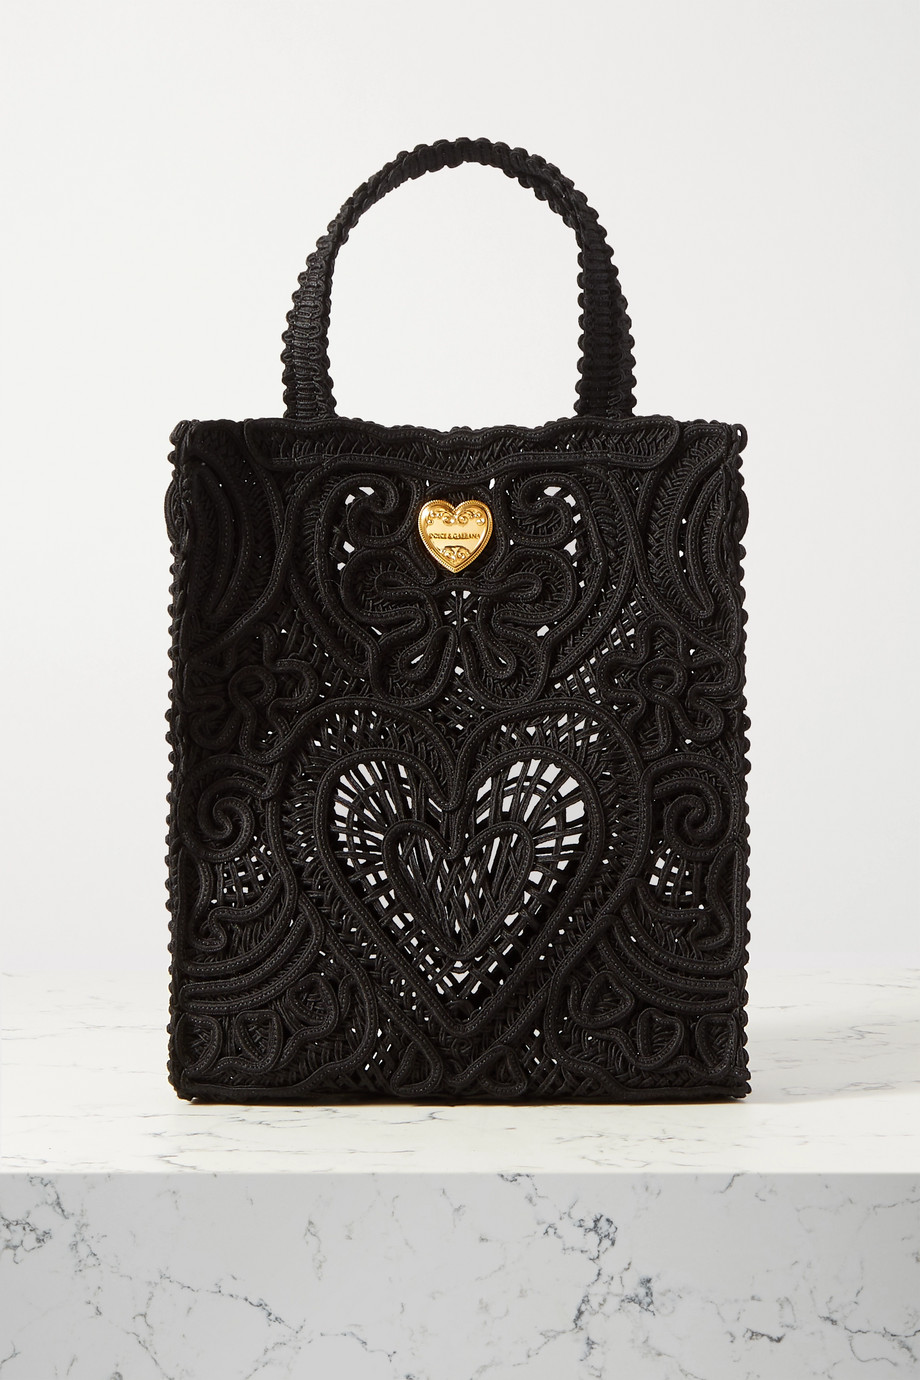 Dolce & Gabbana Beatrice small crocheted tote